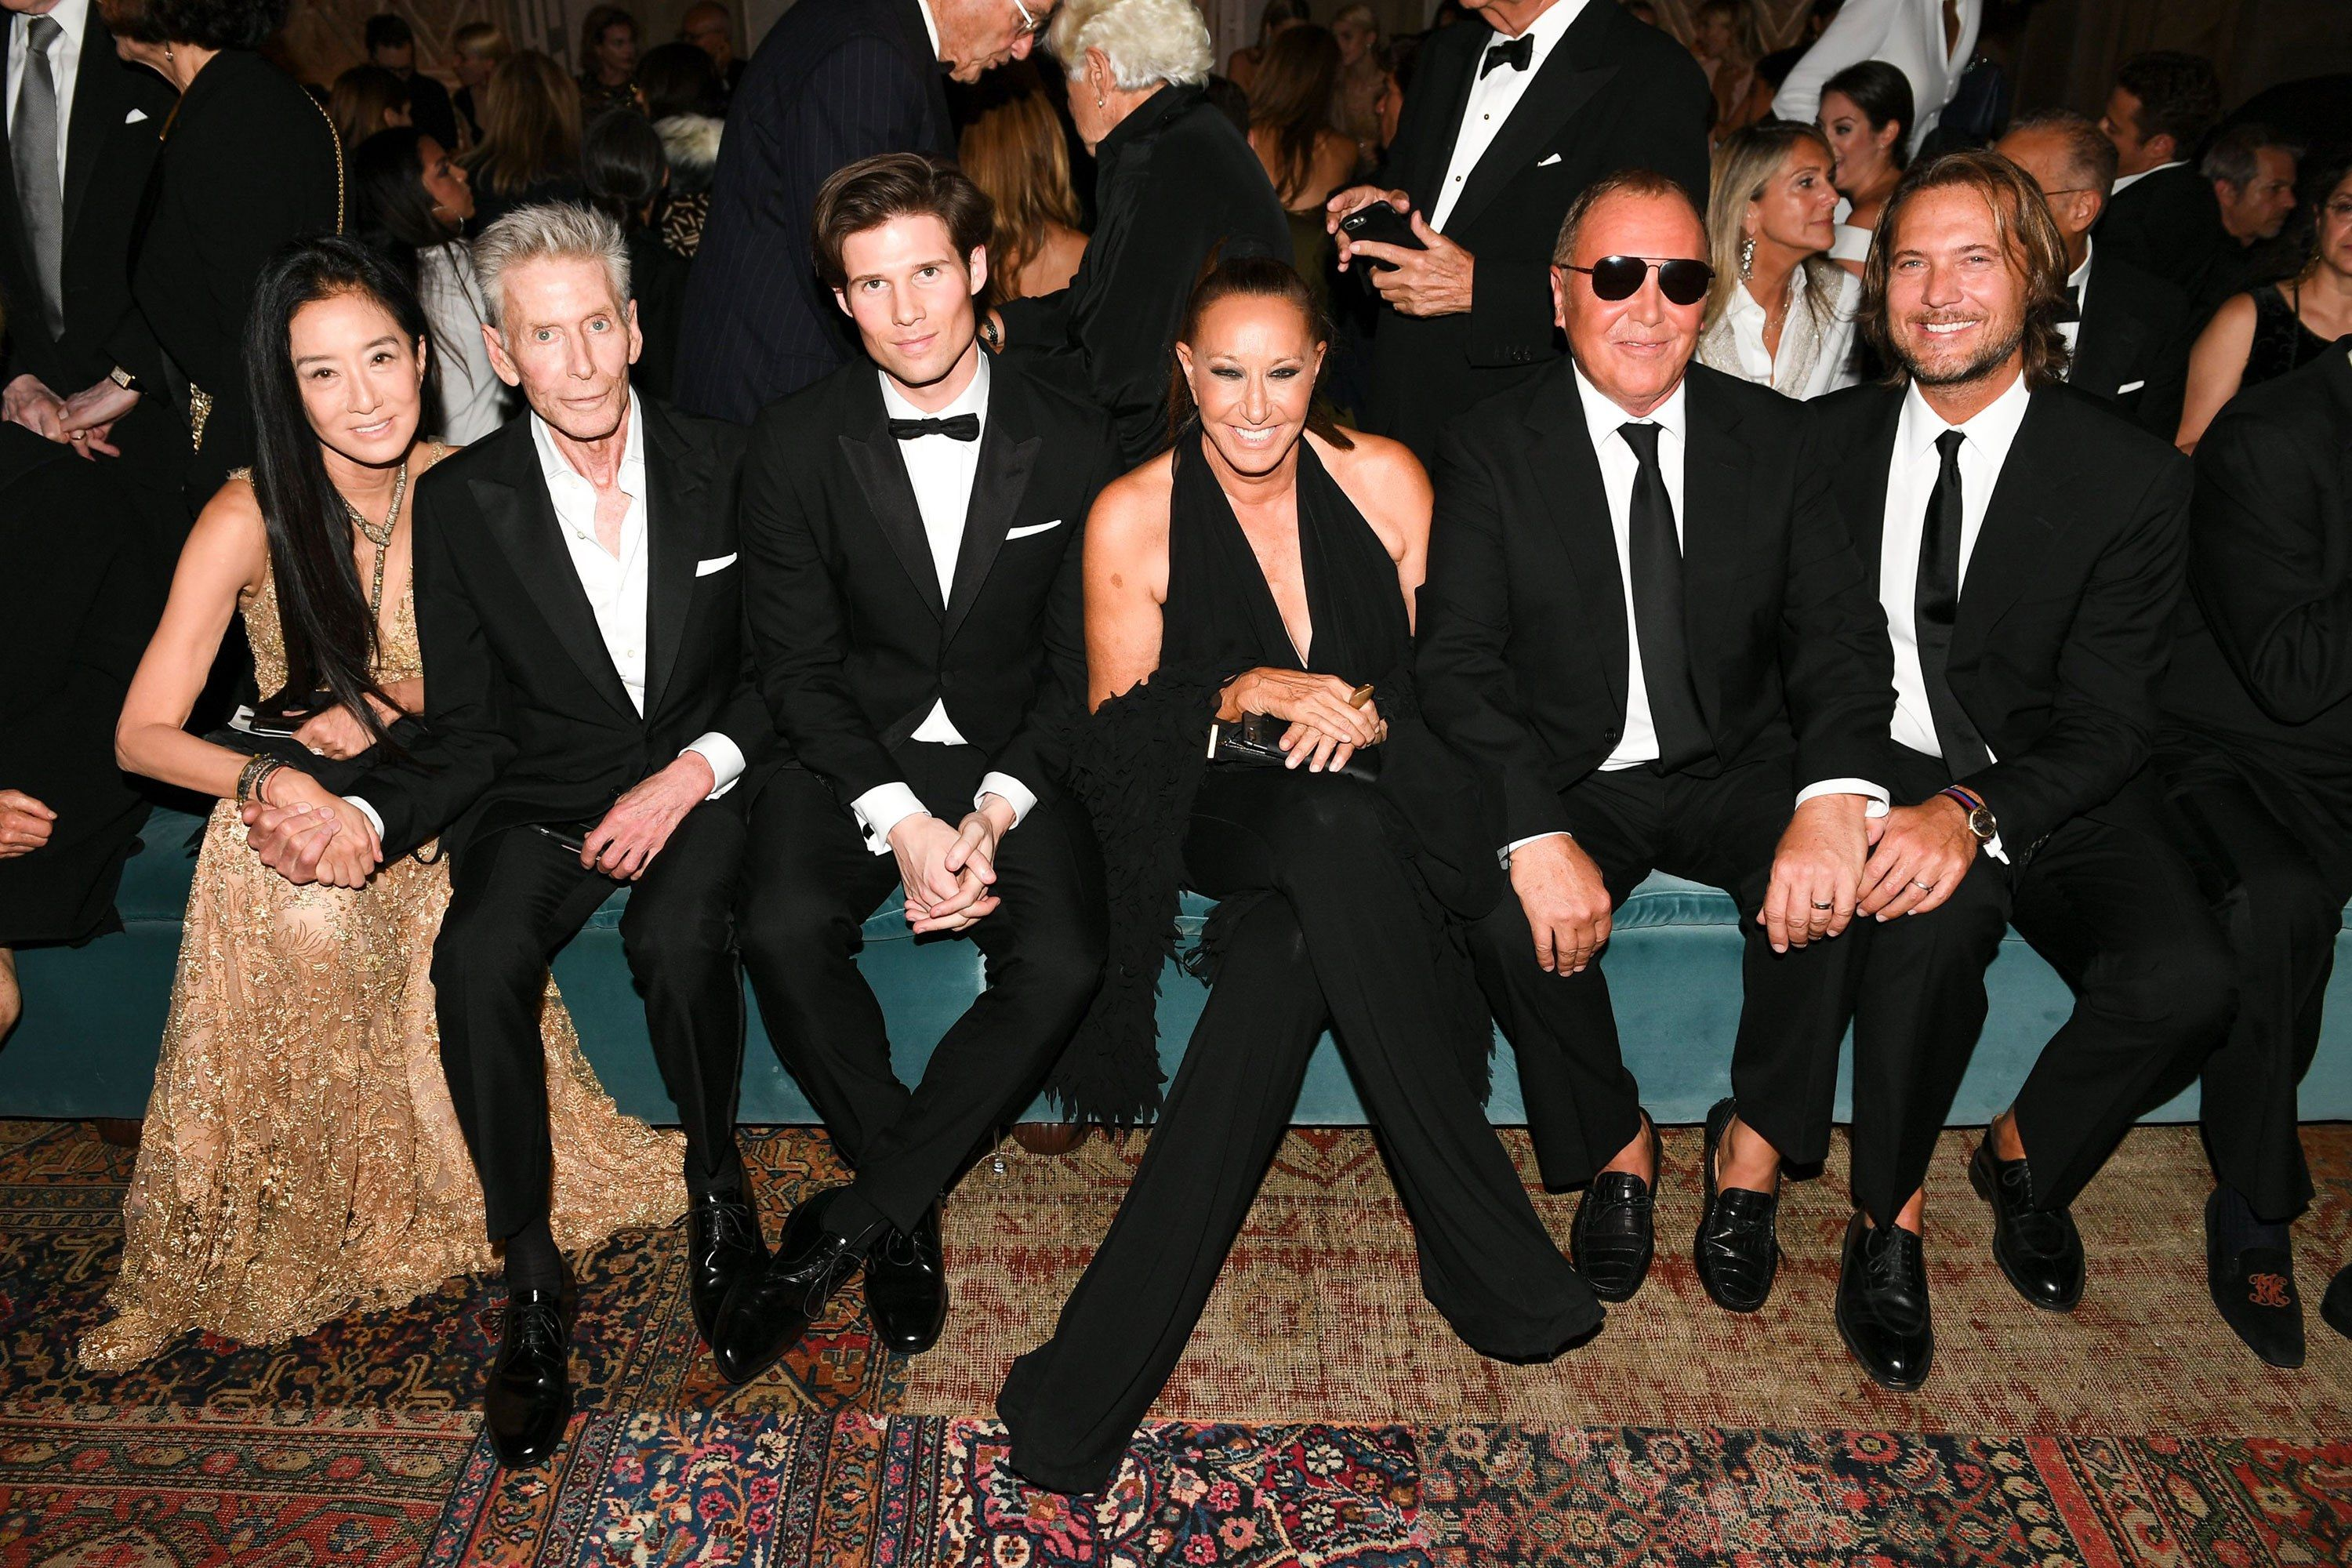 fc10ed53 Hillary Clinton, Kanye West, Oprah Winfrey, and More at Ralph Lauren's 50th  Anniversary Show and Dinner